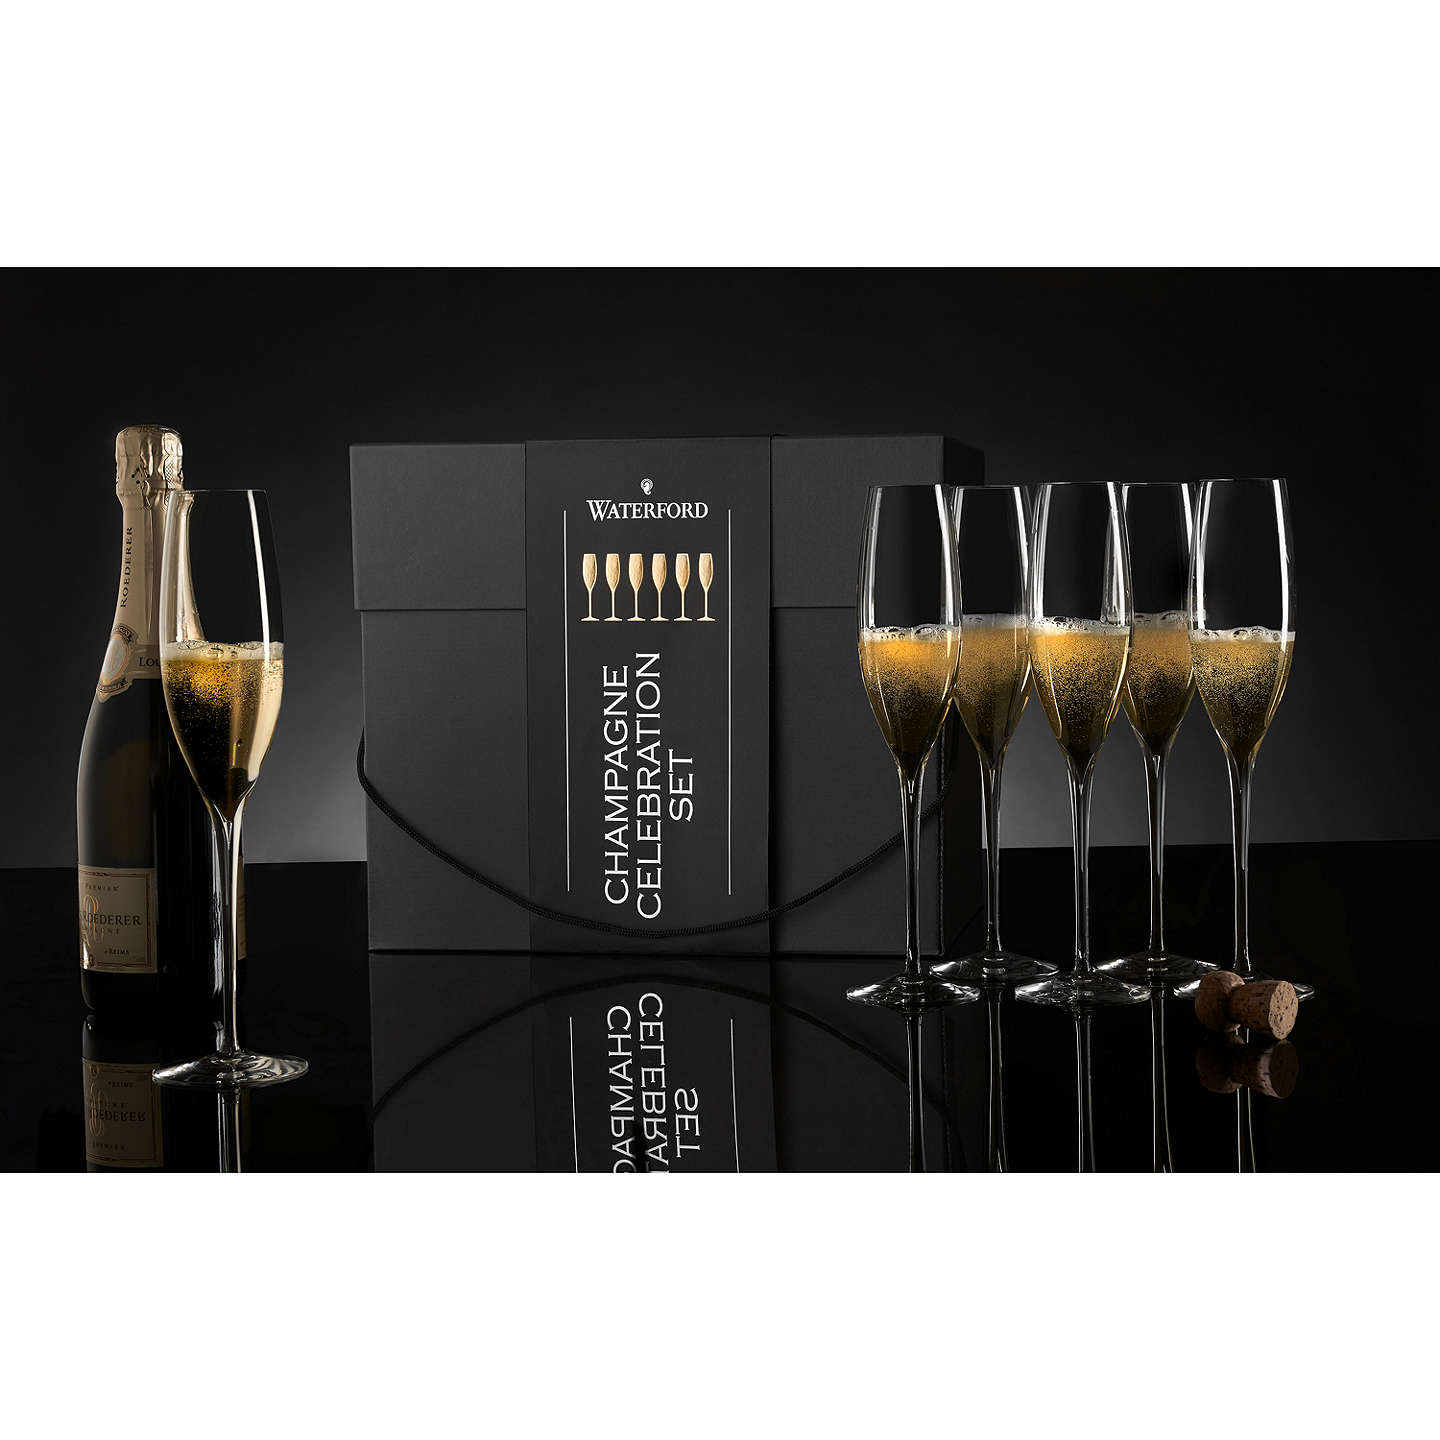 BuyWaterford Elegance Champagne Toasting Flutes, Set of 6 Online at johnlewis.com